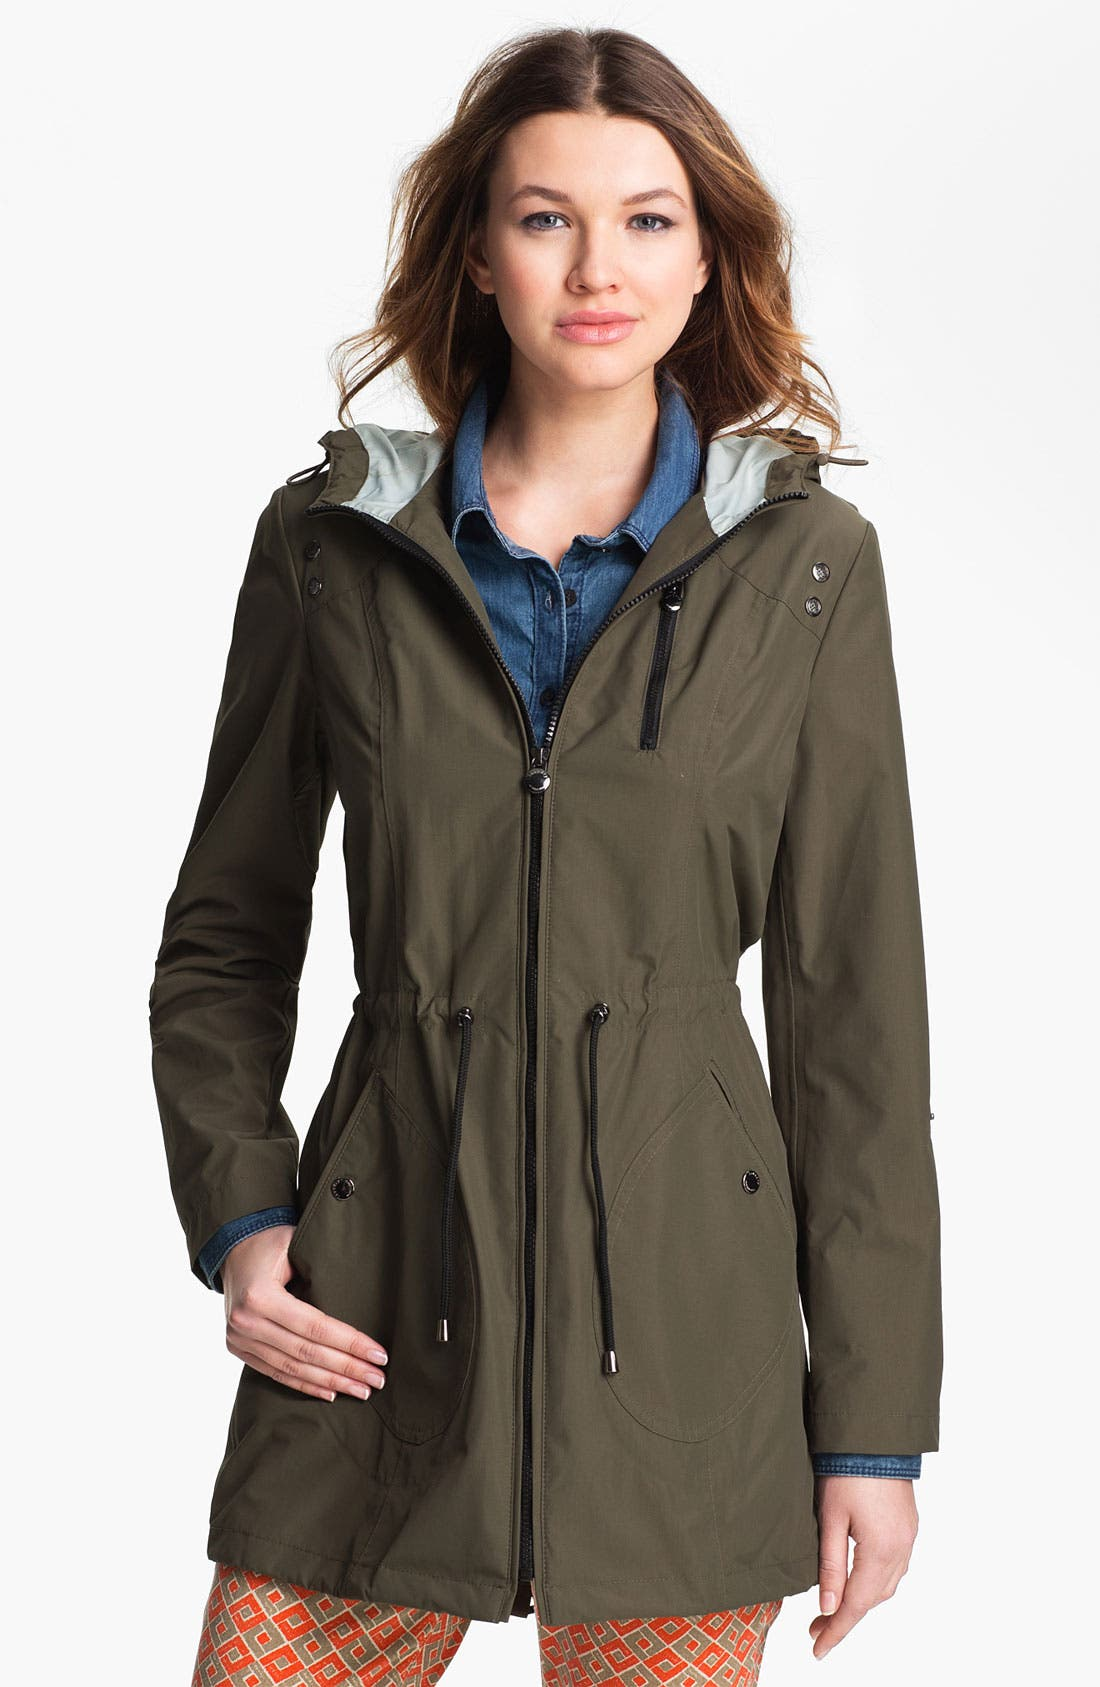 Alternate Image 1 Selected - Laundry by Shelli Segal Packable Water Repellent Anorak